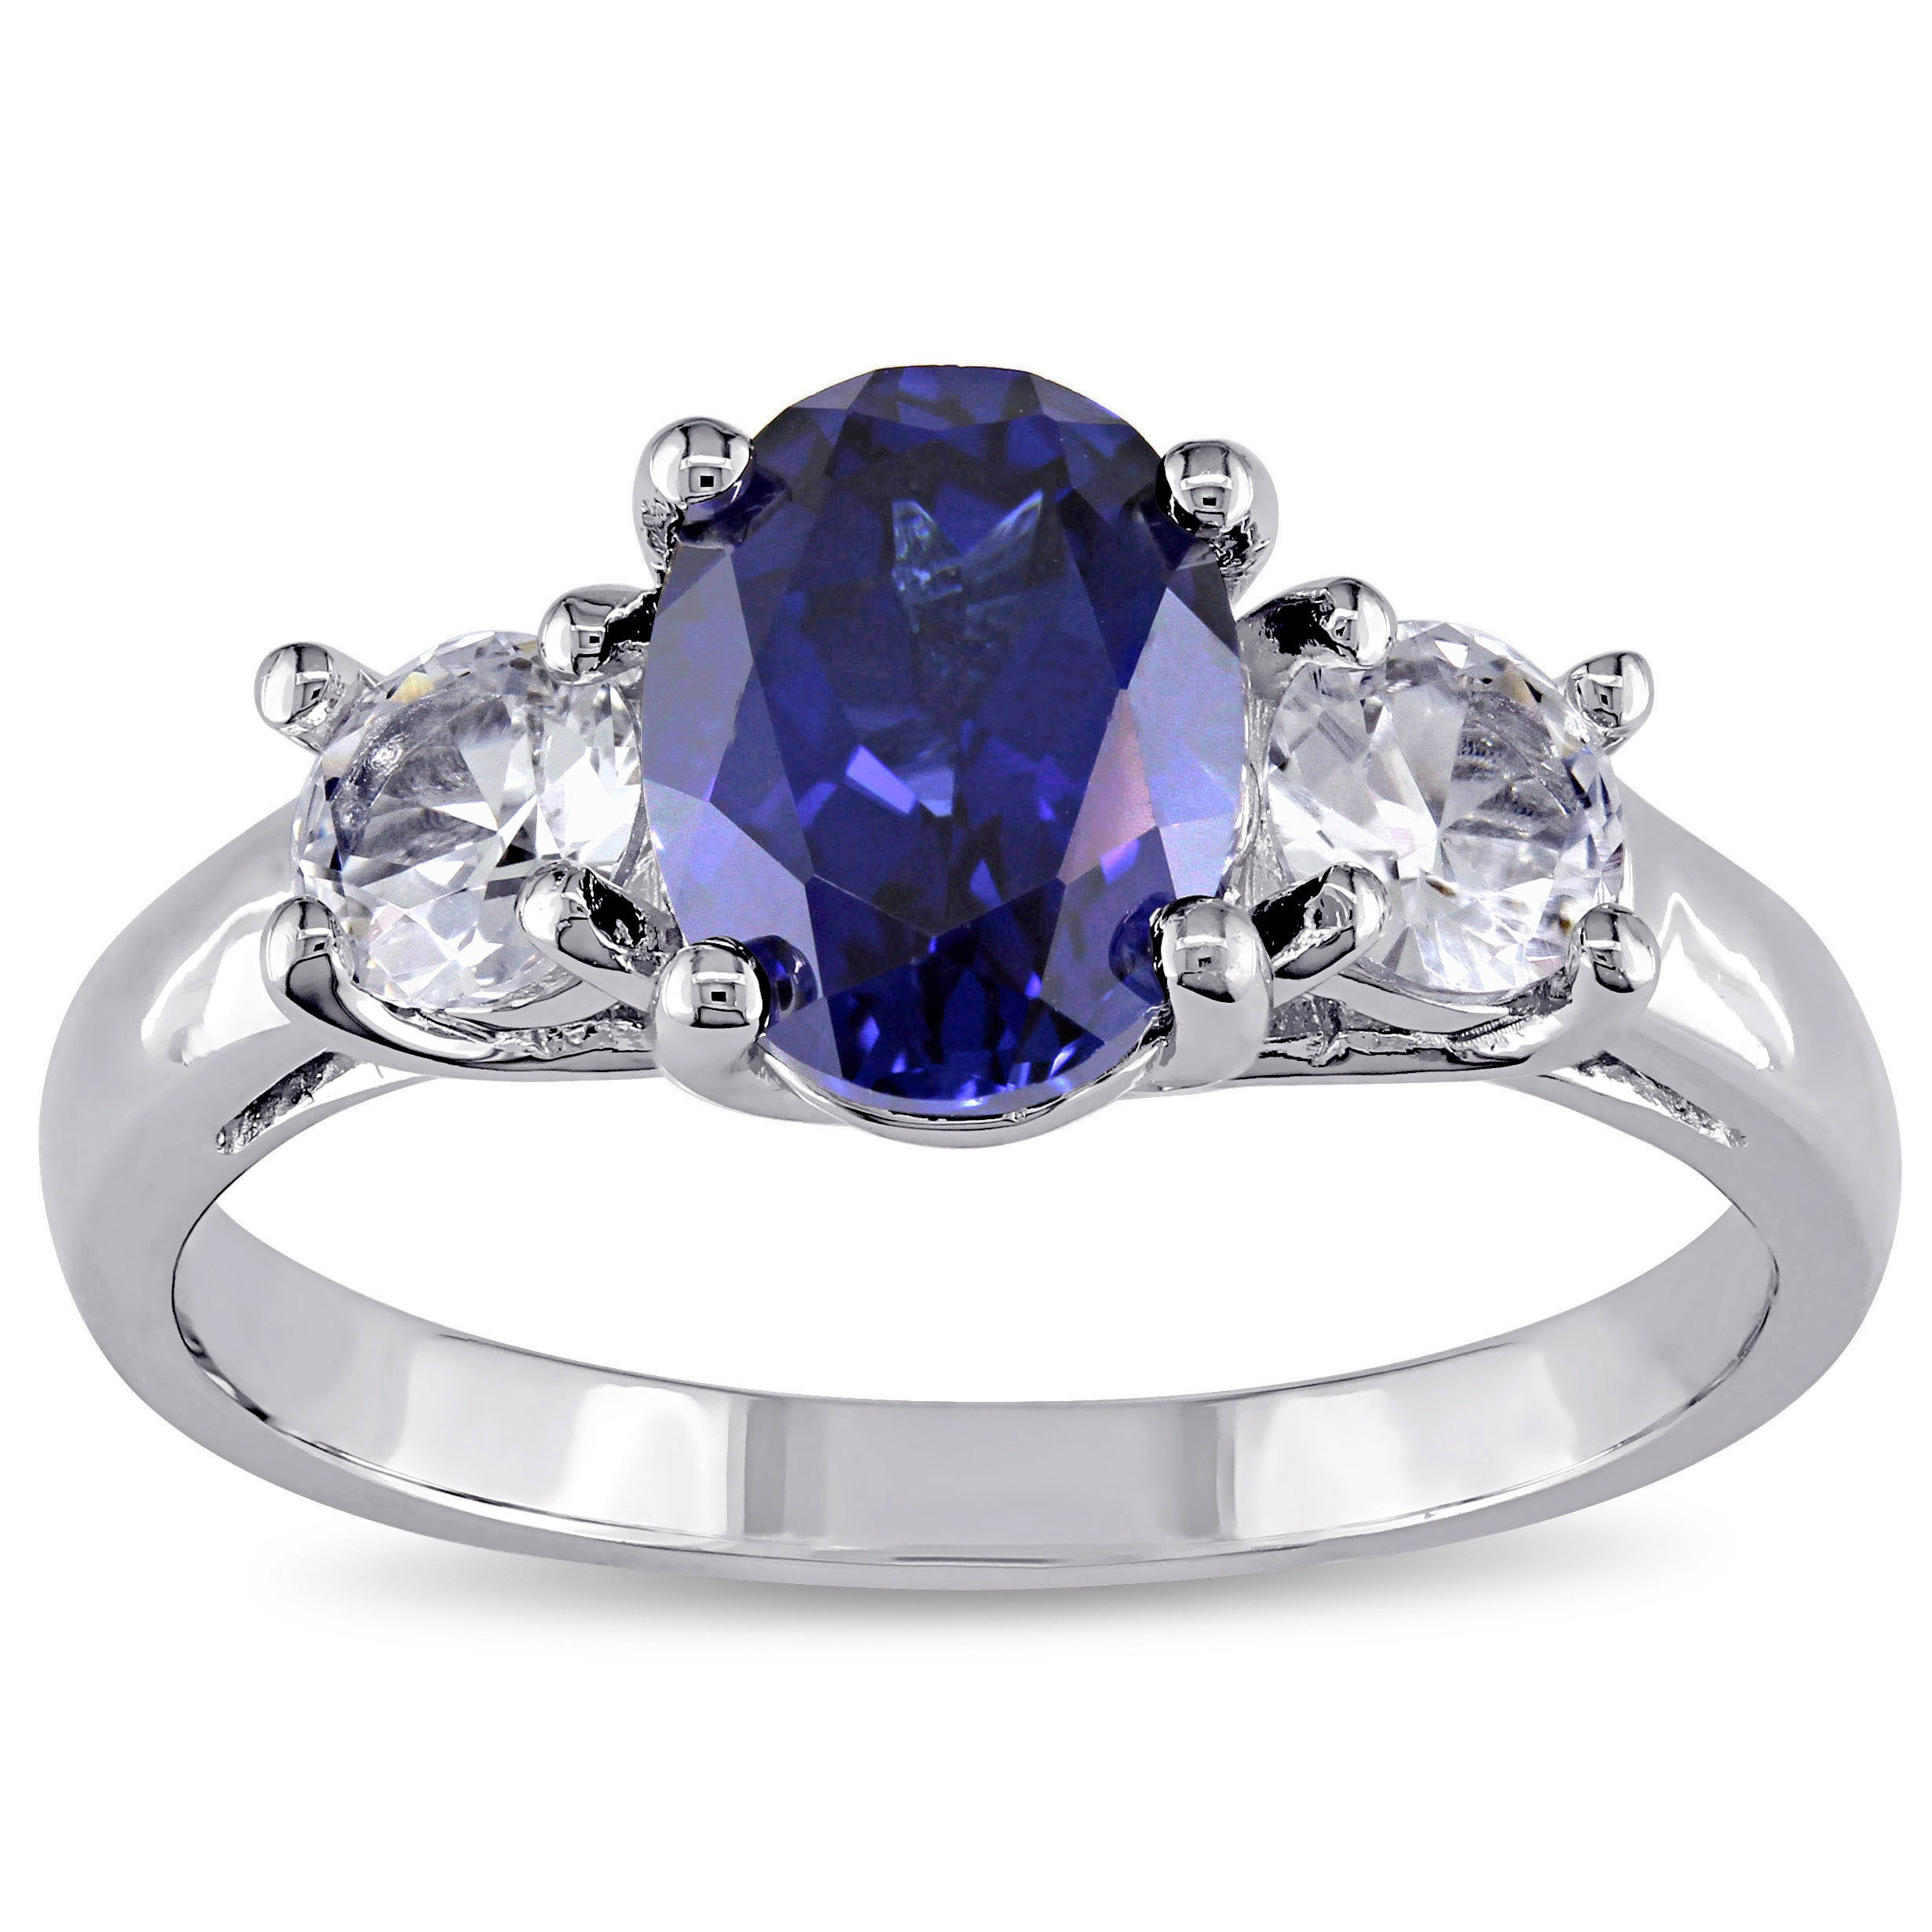 goldheart eternity bands eboutique half ring diamond sapphire